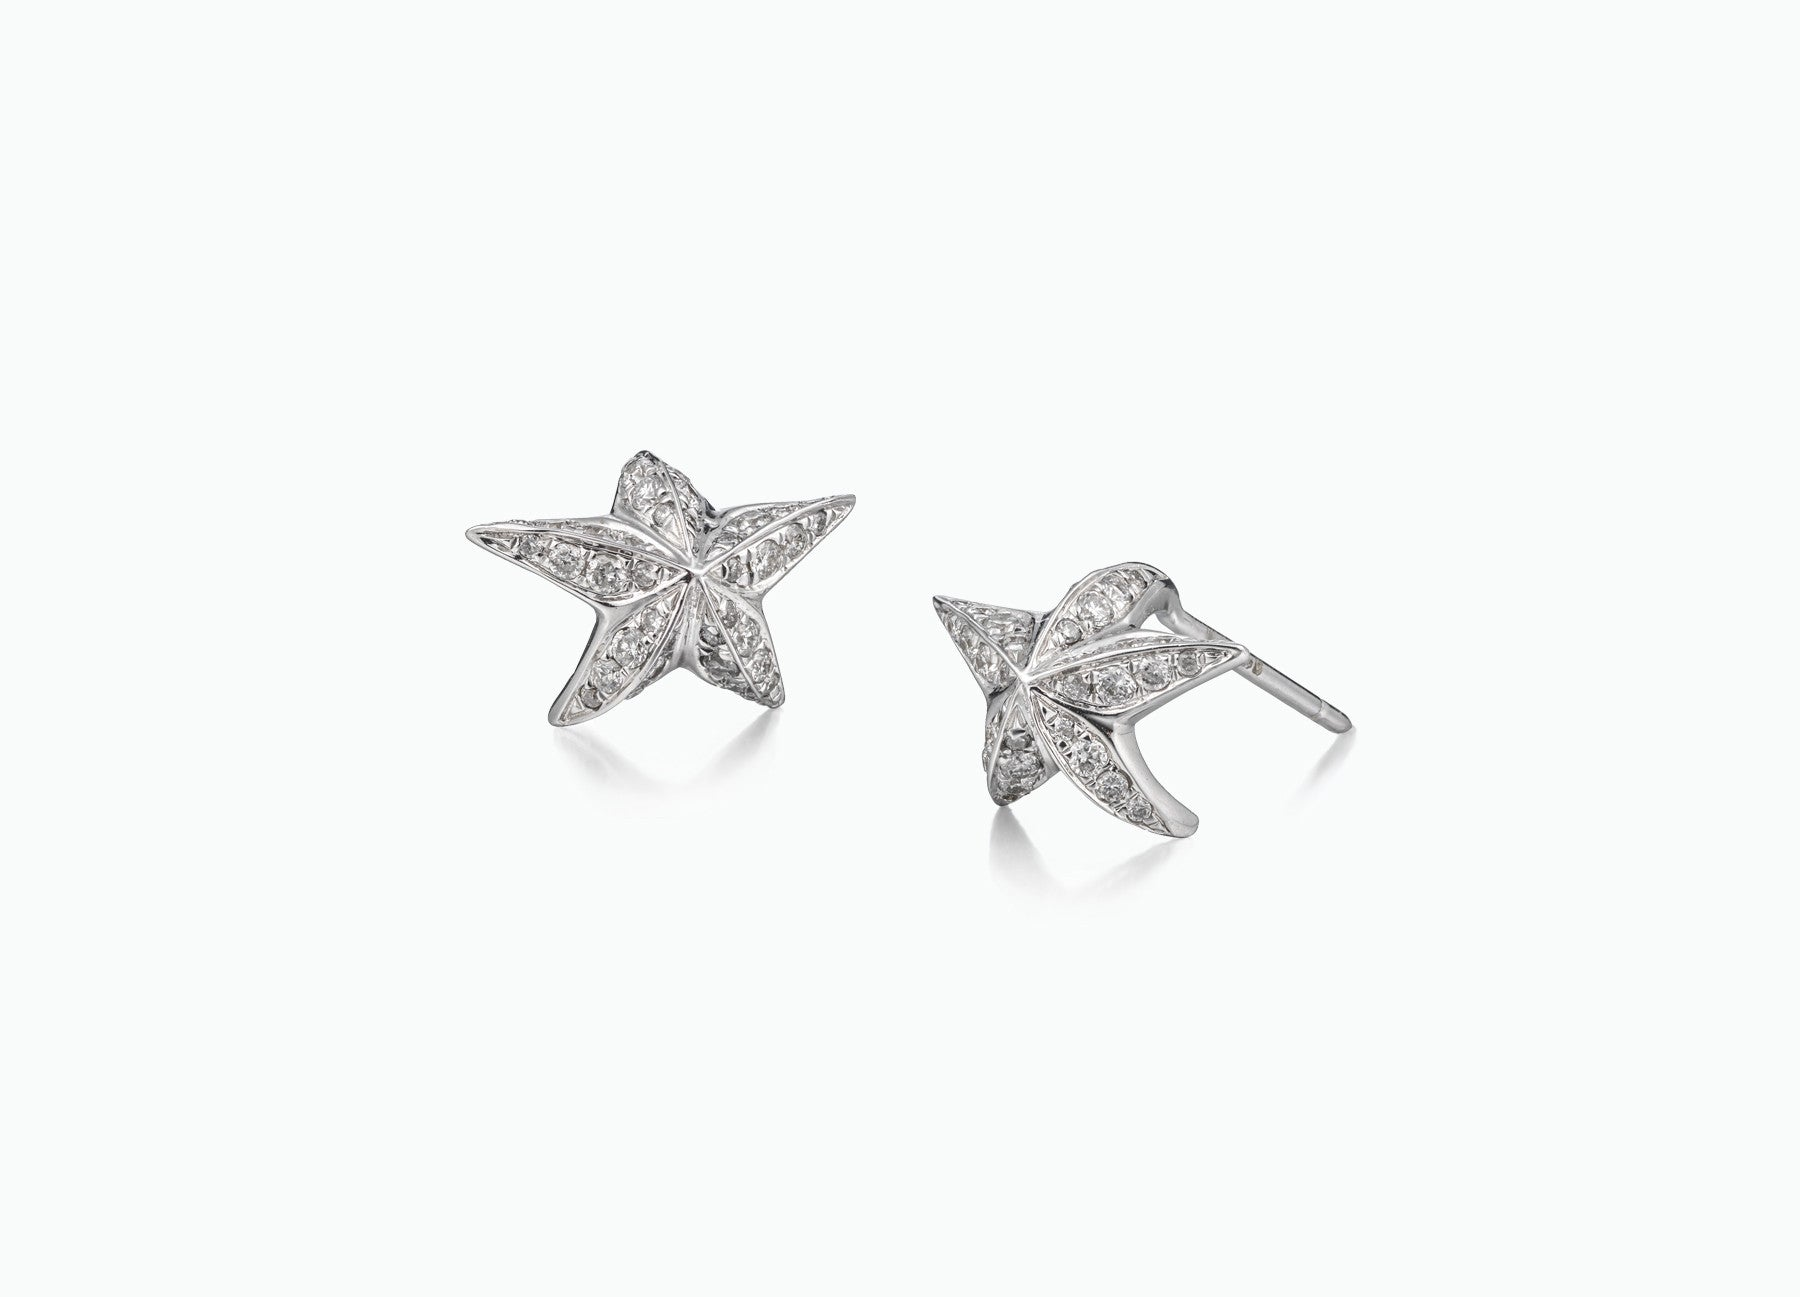 BLACK STAR STUD EARRINGS DIAMOND